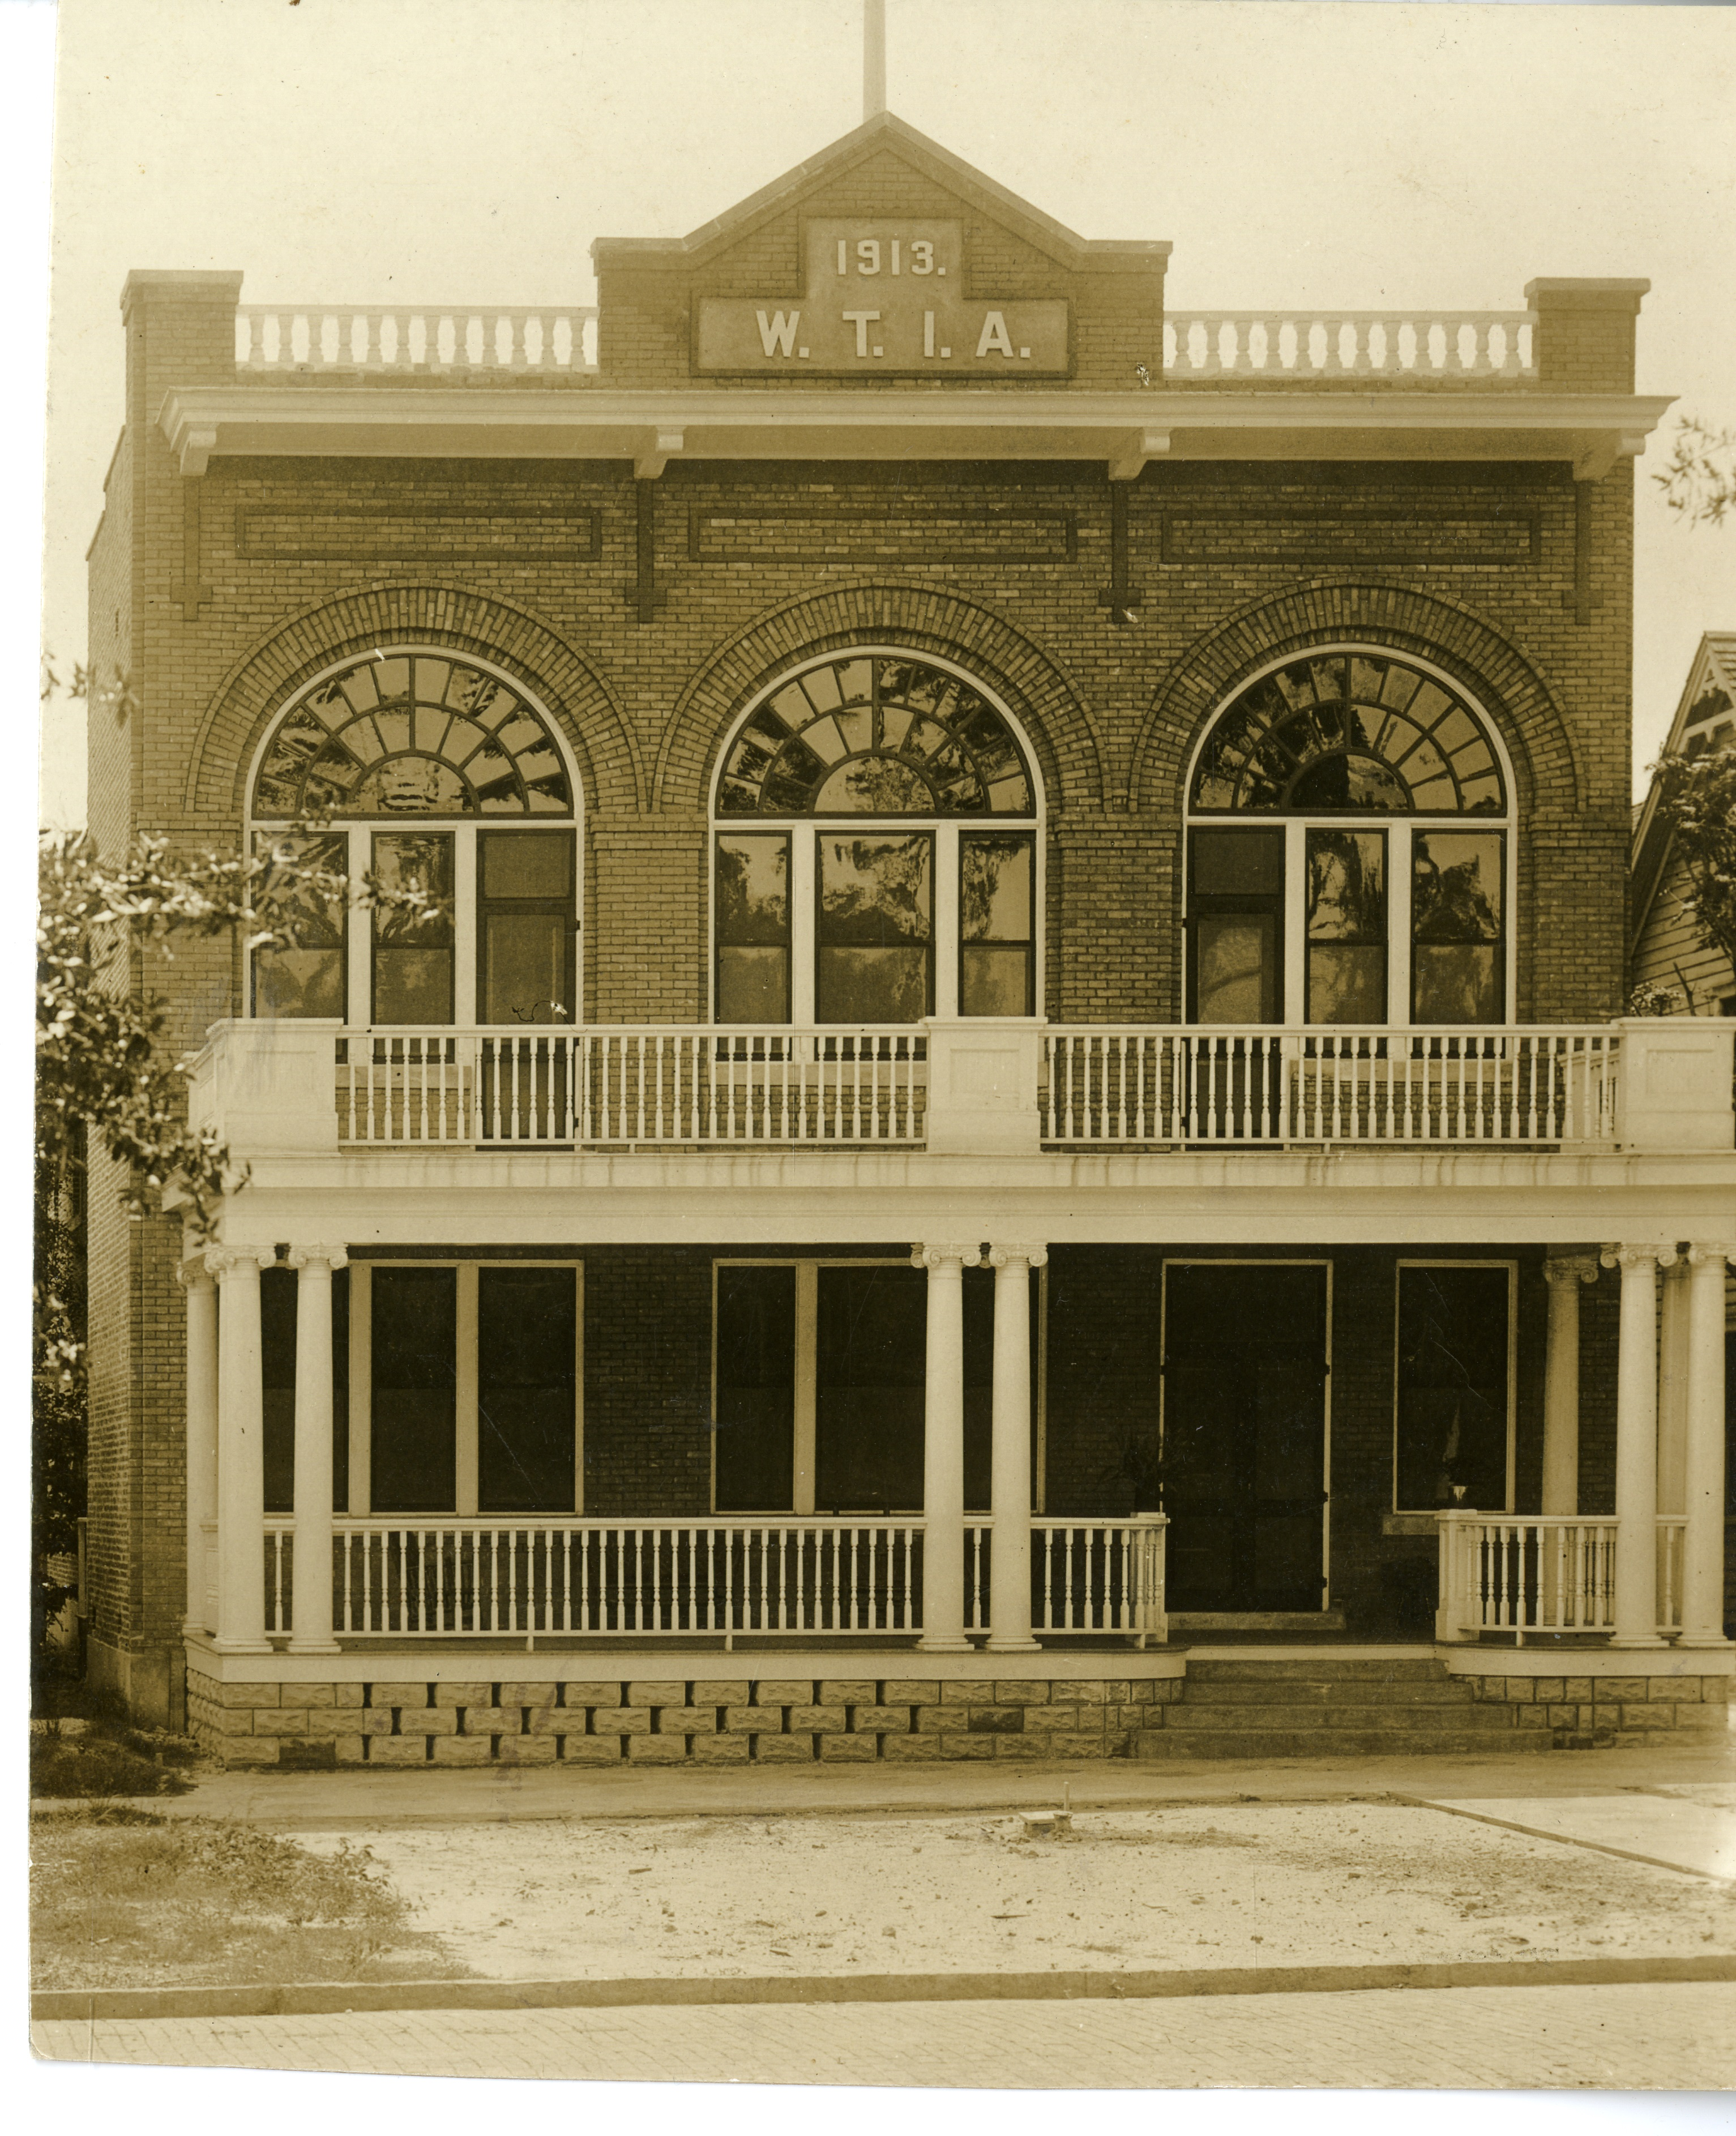 Headquarters of the St. Petersburg Women's Town Improvement Association in downtown St. Petersburg, circa 1913. This building no longer exists. The WTIA was founded in 1901 and first met in the Detroit Hotel. Sarah Armistead, the widow of John C. Williams, was an early member of the WTIA. The WTIA continued the work of the Park Improvement Association, who were responsible for building the bandstand, in beautifying Williams Park.